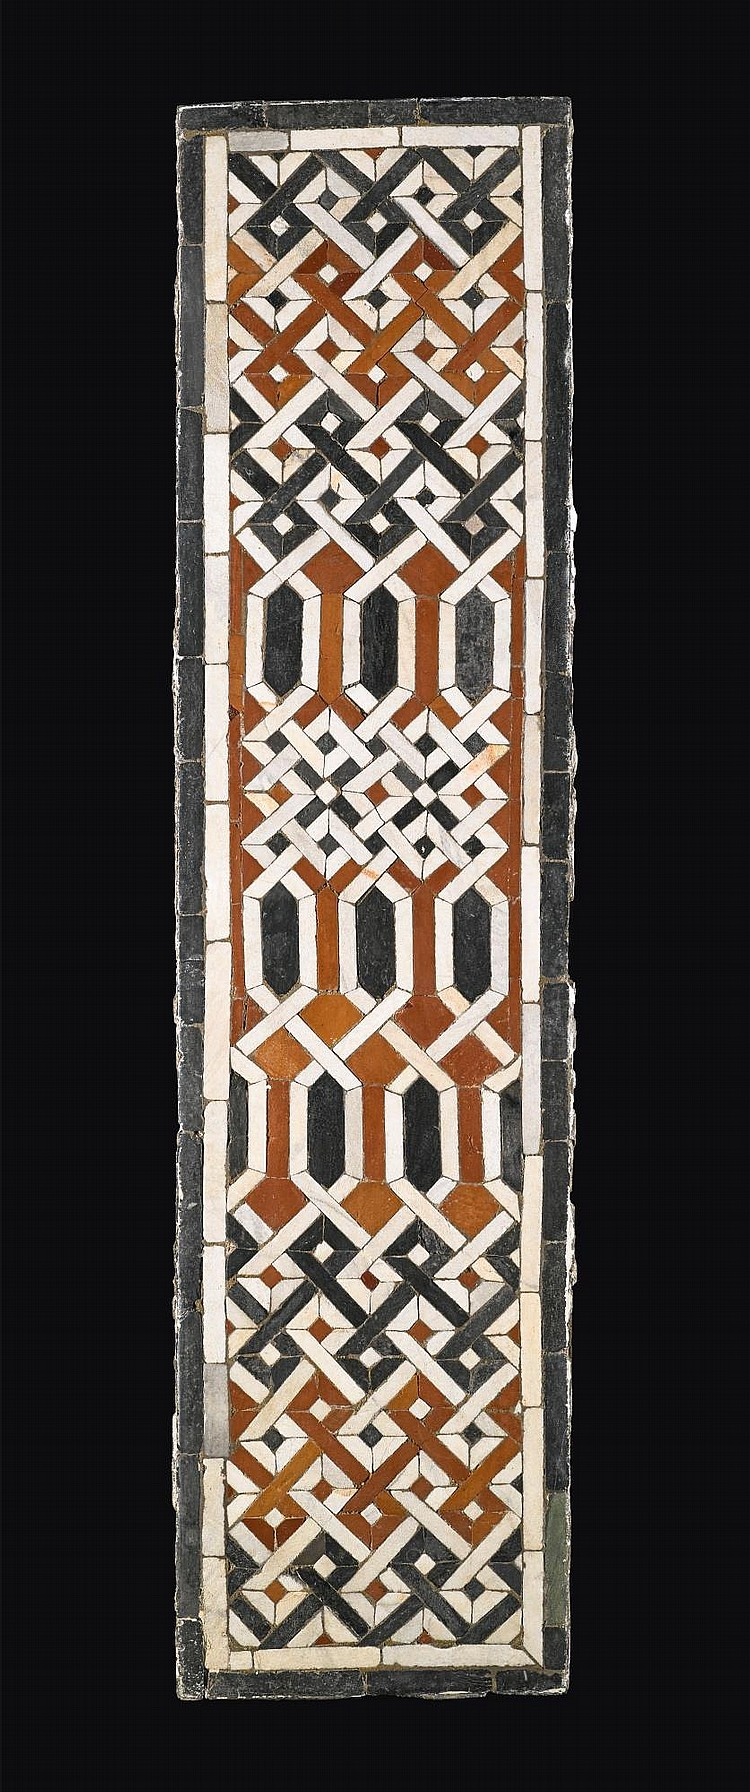 A LATE MAMLUK OR EARLY OTTOMAN GEOMETRIC MARBLE MOSAIC PANEL, EGYPT, PROBABLY CAIRO, 15TH-17TH CENTURY |